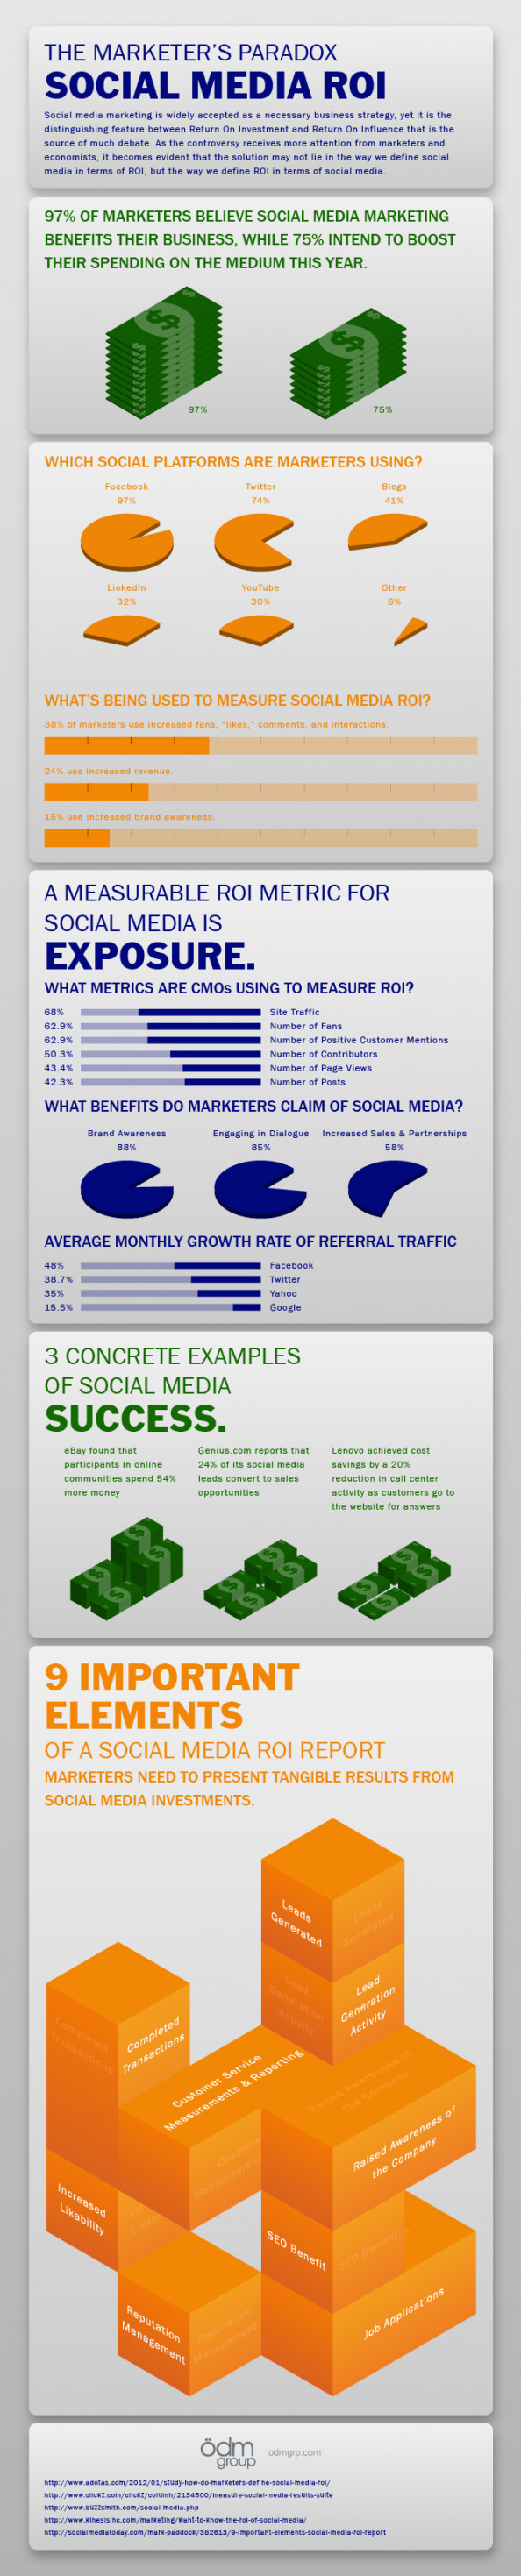 The Marketer's Paradox - Social Media ROI Infographic